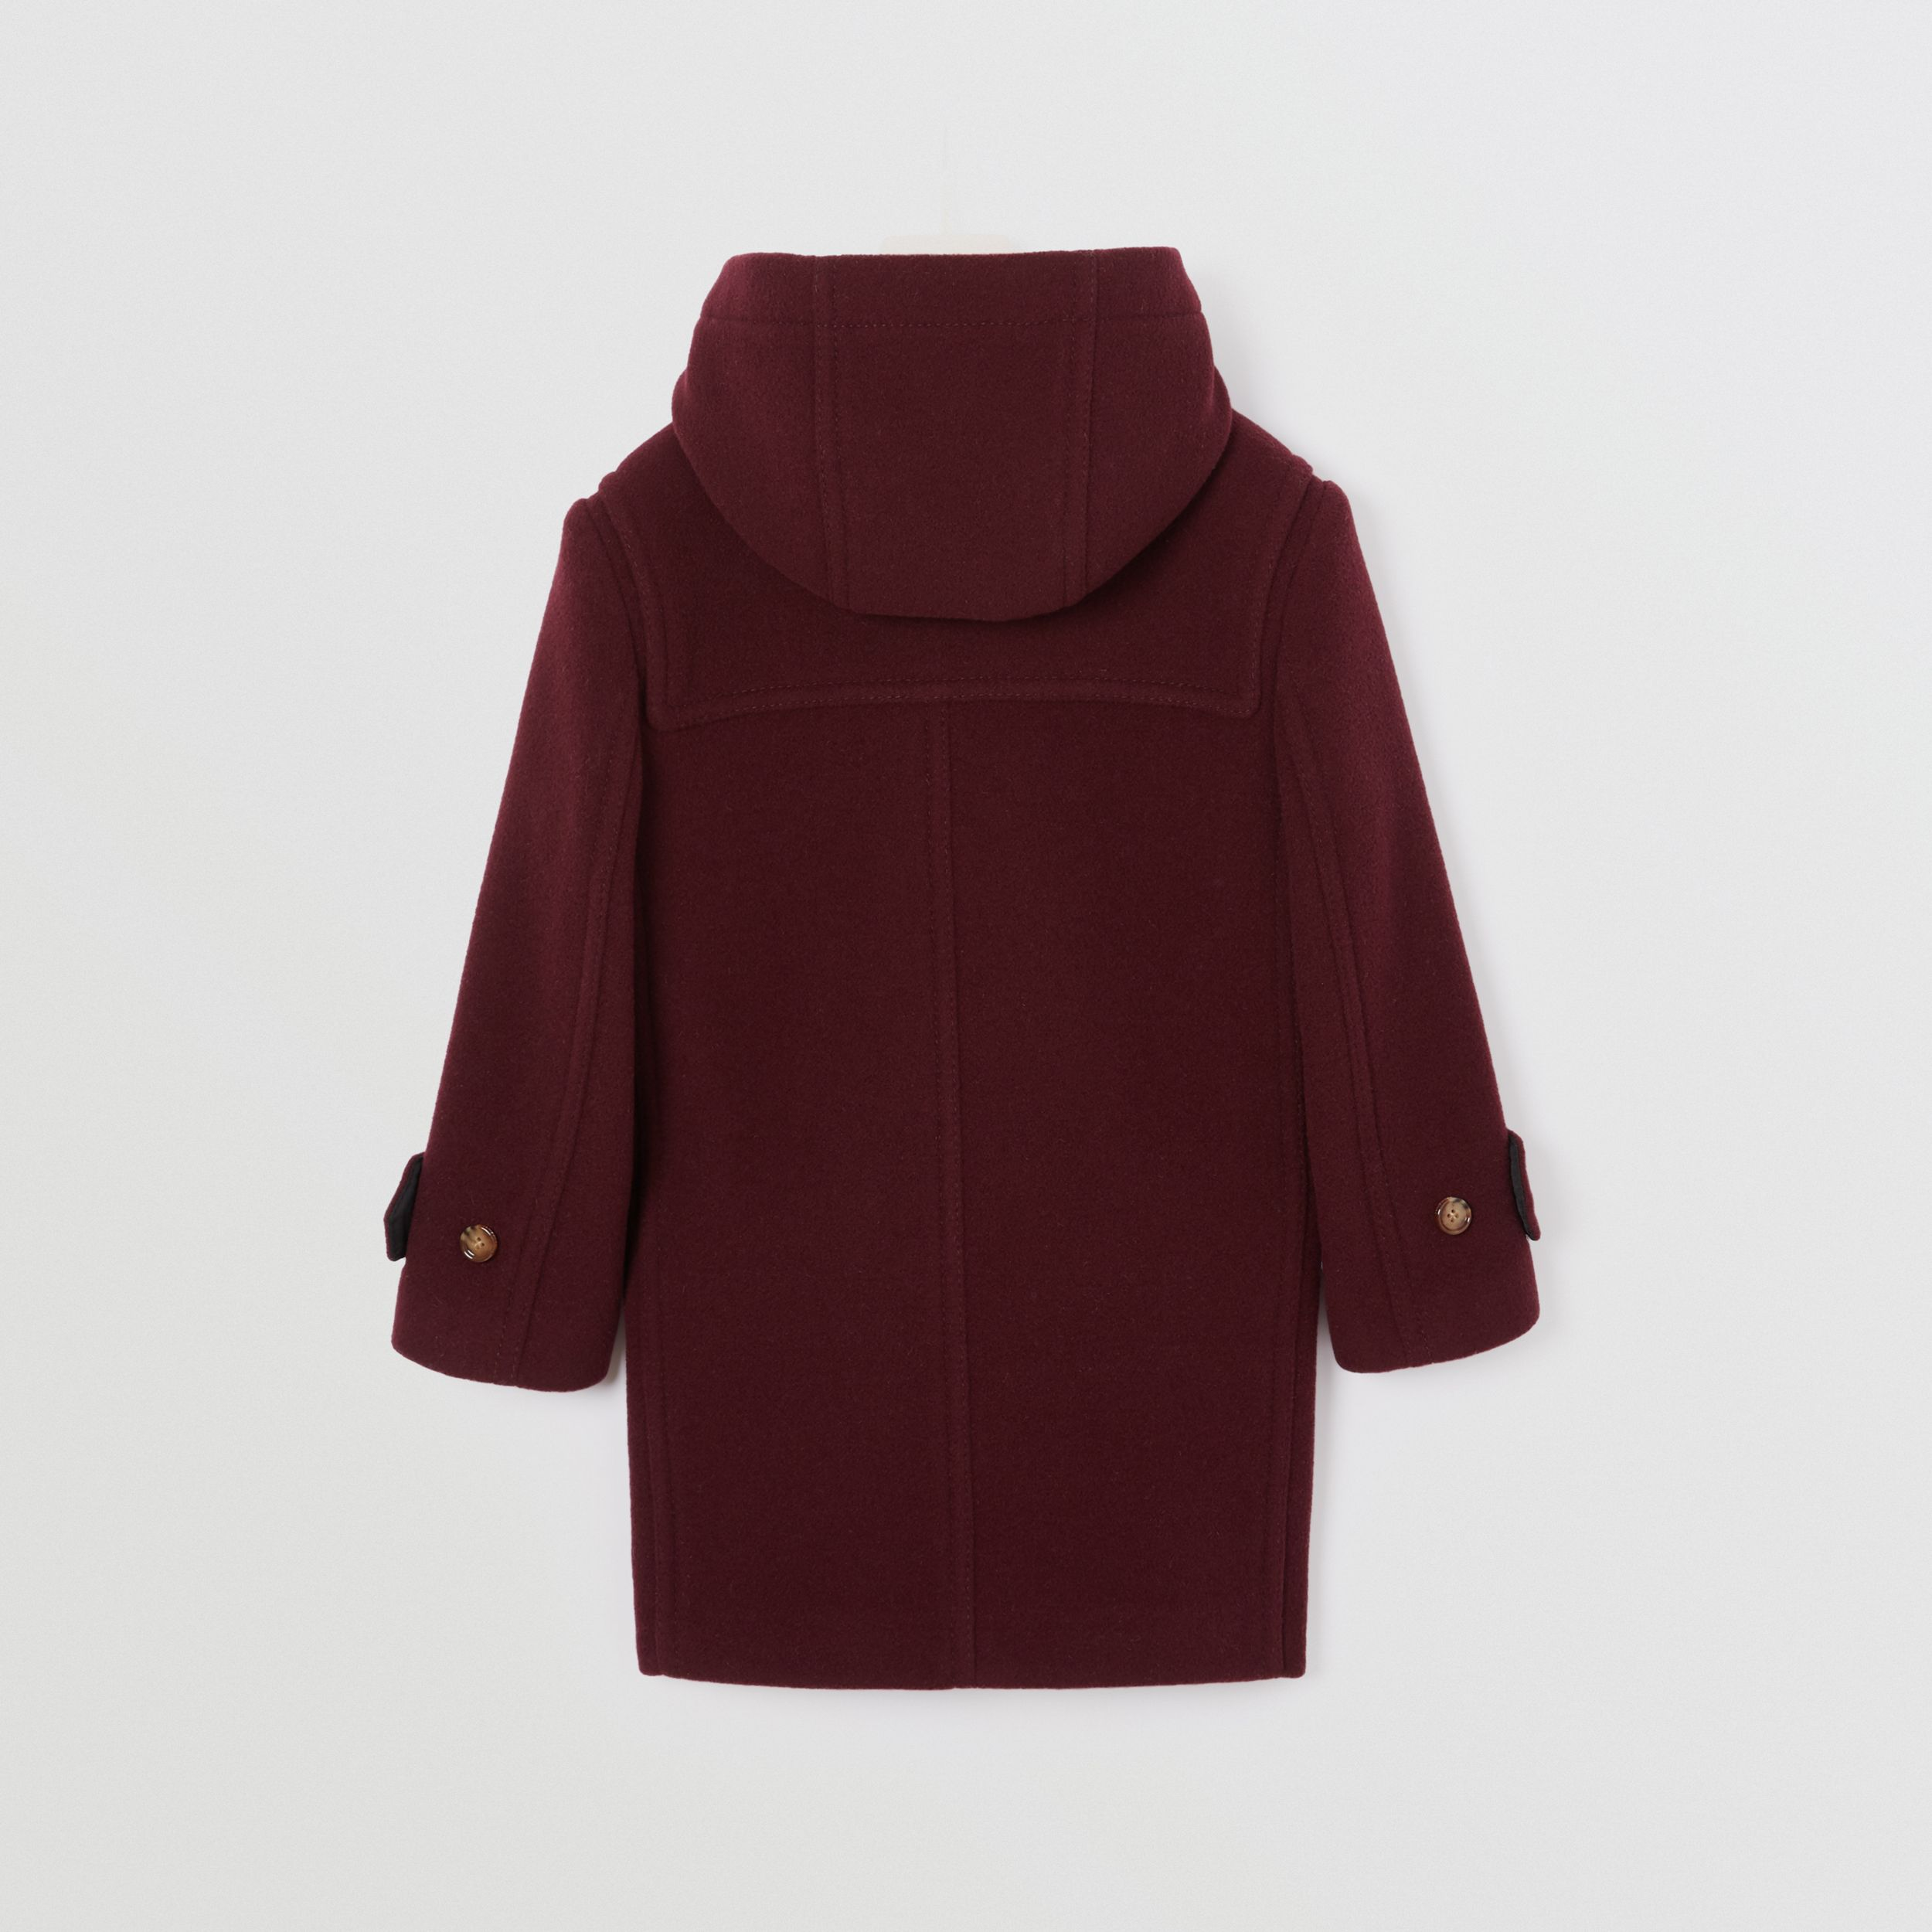 Double-faced Wool Duffle Coat in Burgundy | Burberry - 4